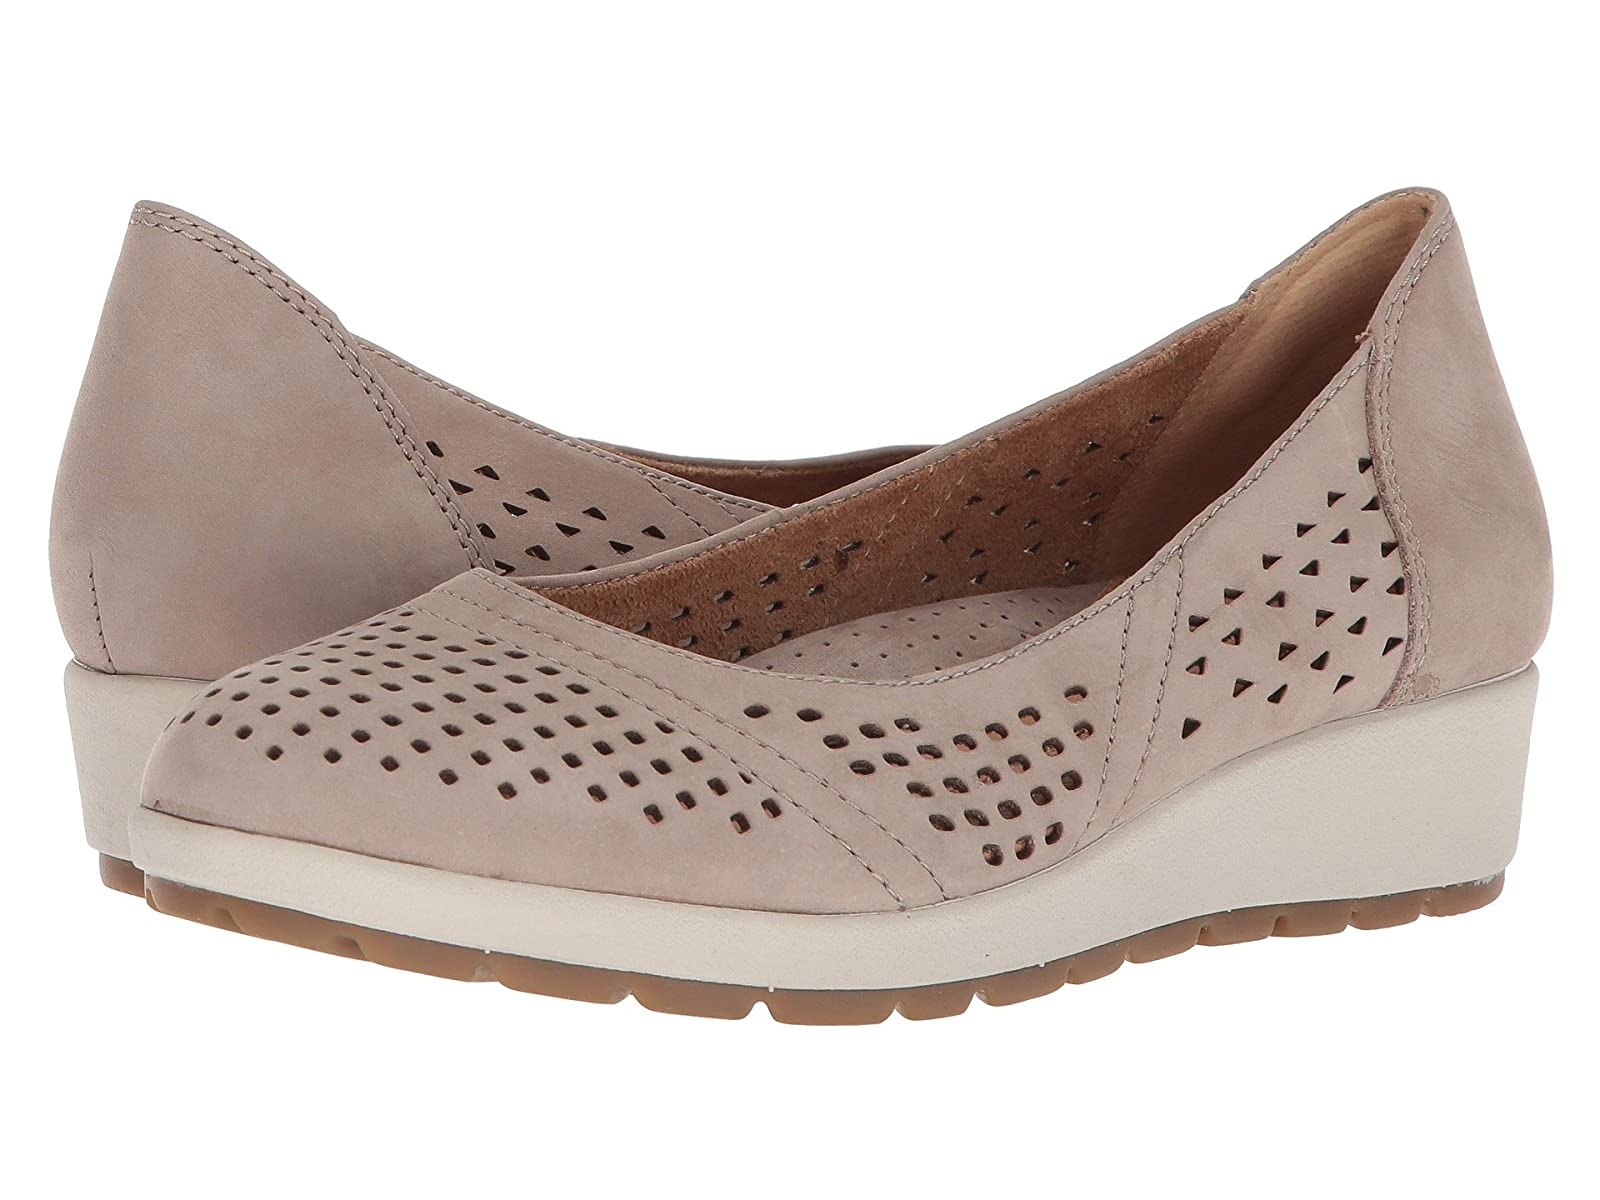 Earth VioletCheap and distinctive eye-catching shoes